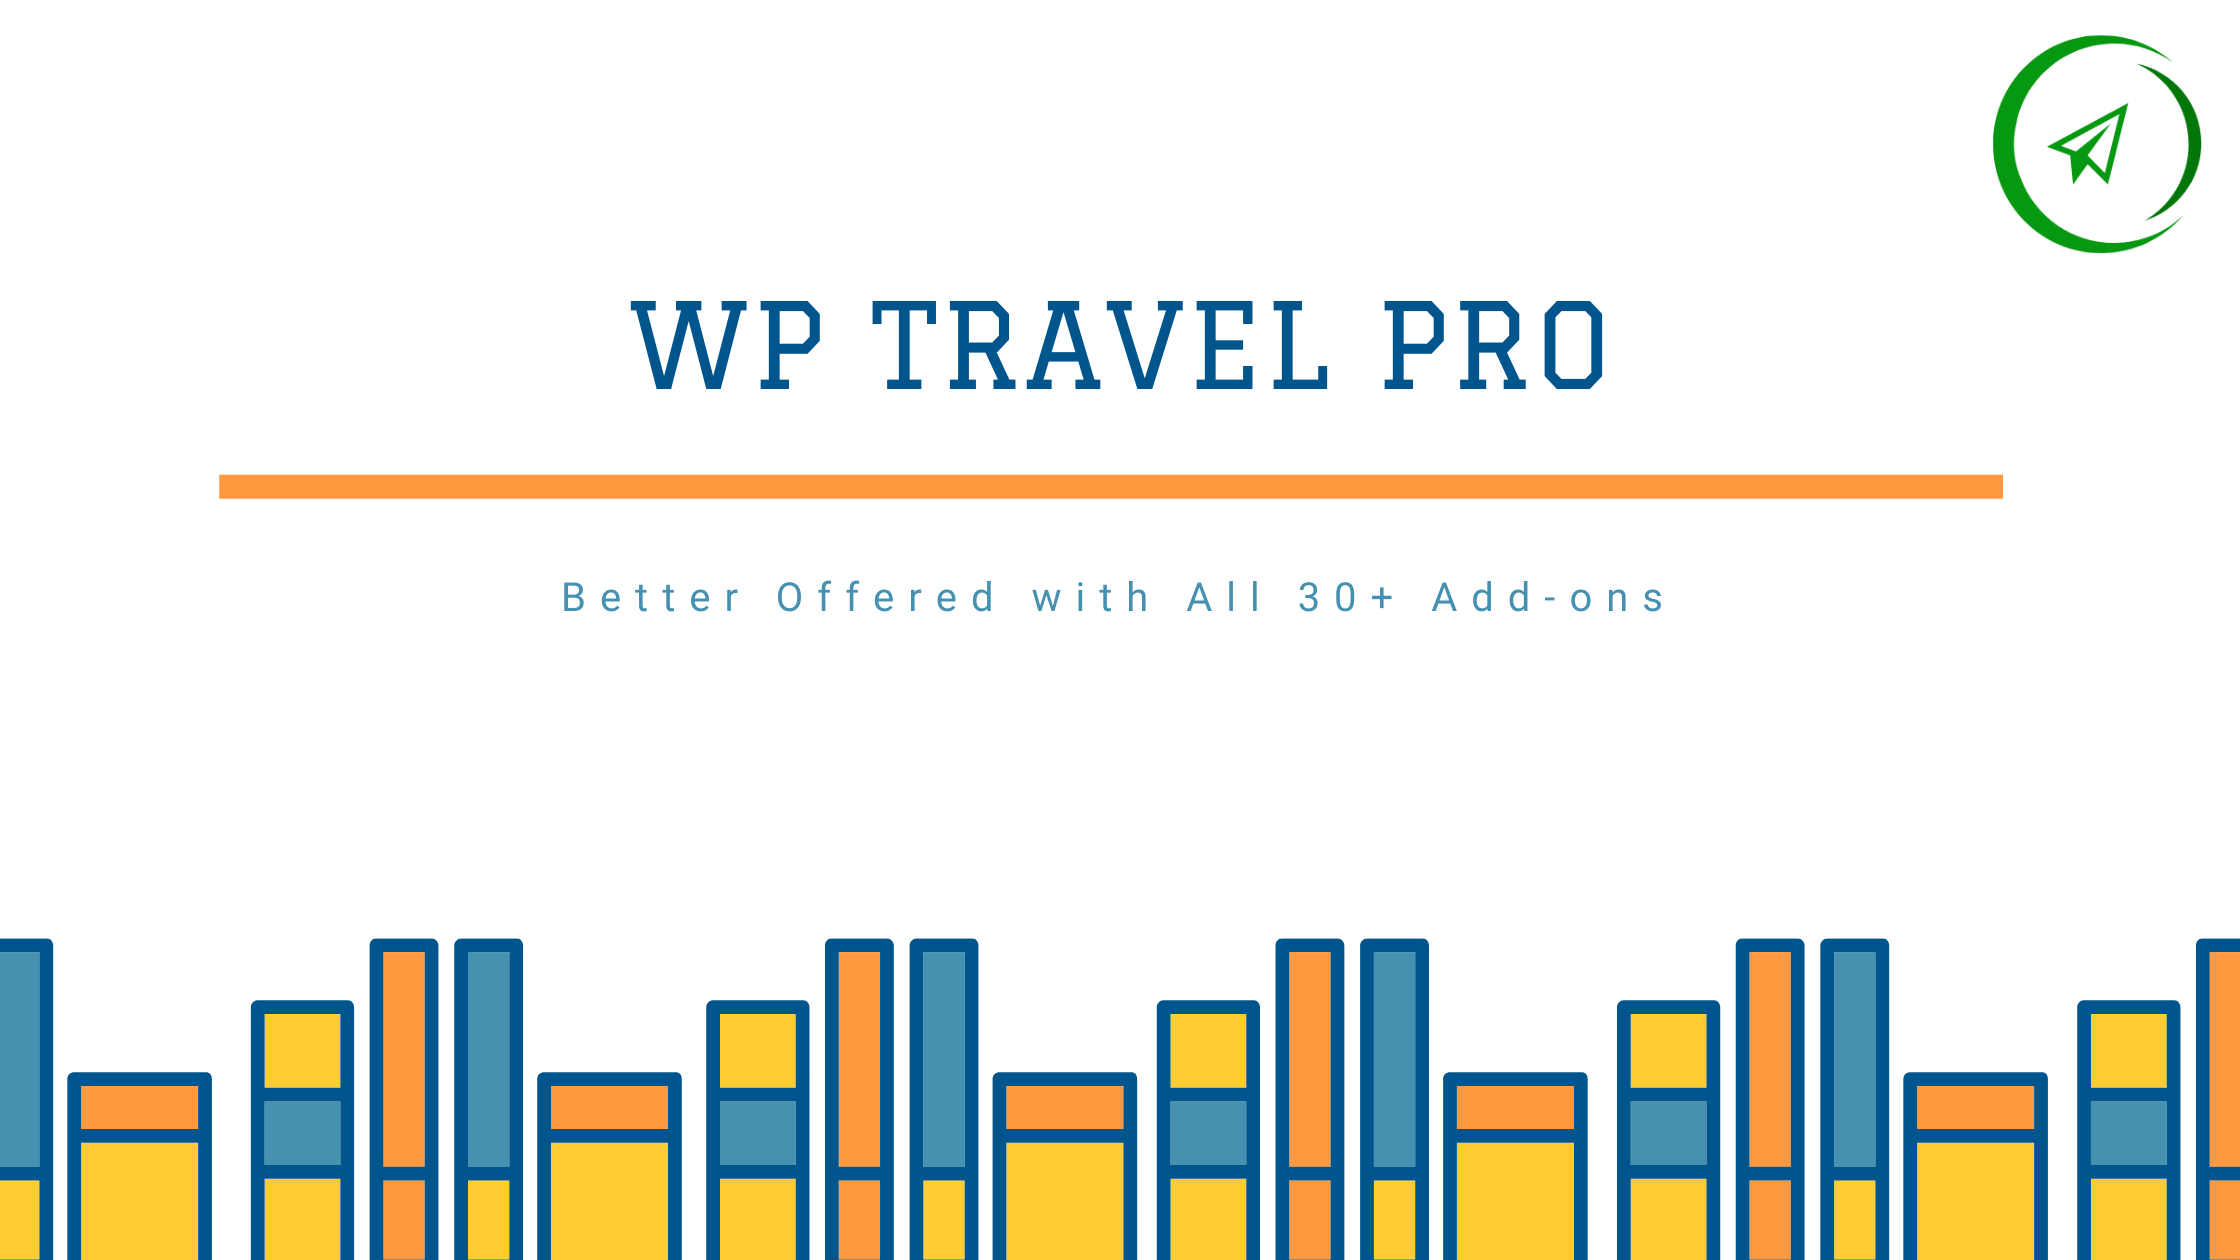 WP Travel Pro Changes in Add-on and Discount